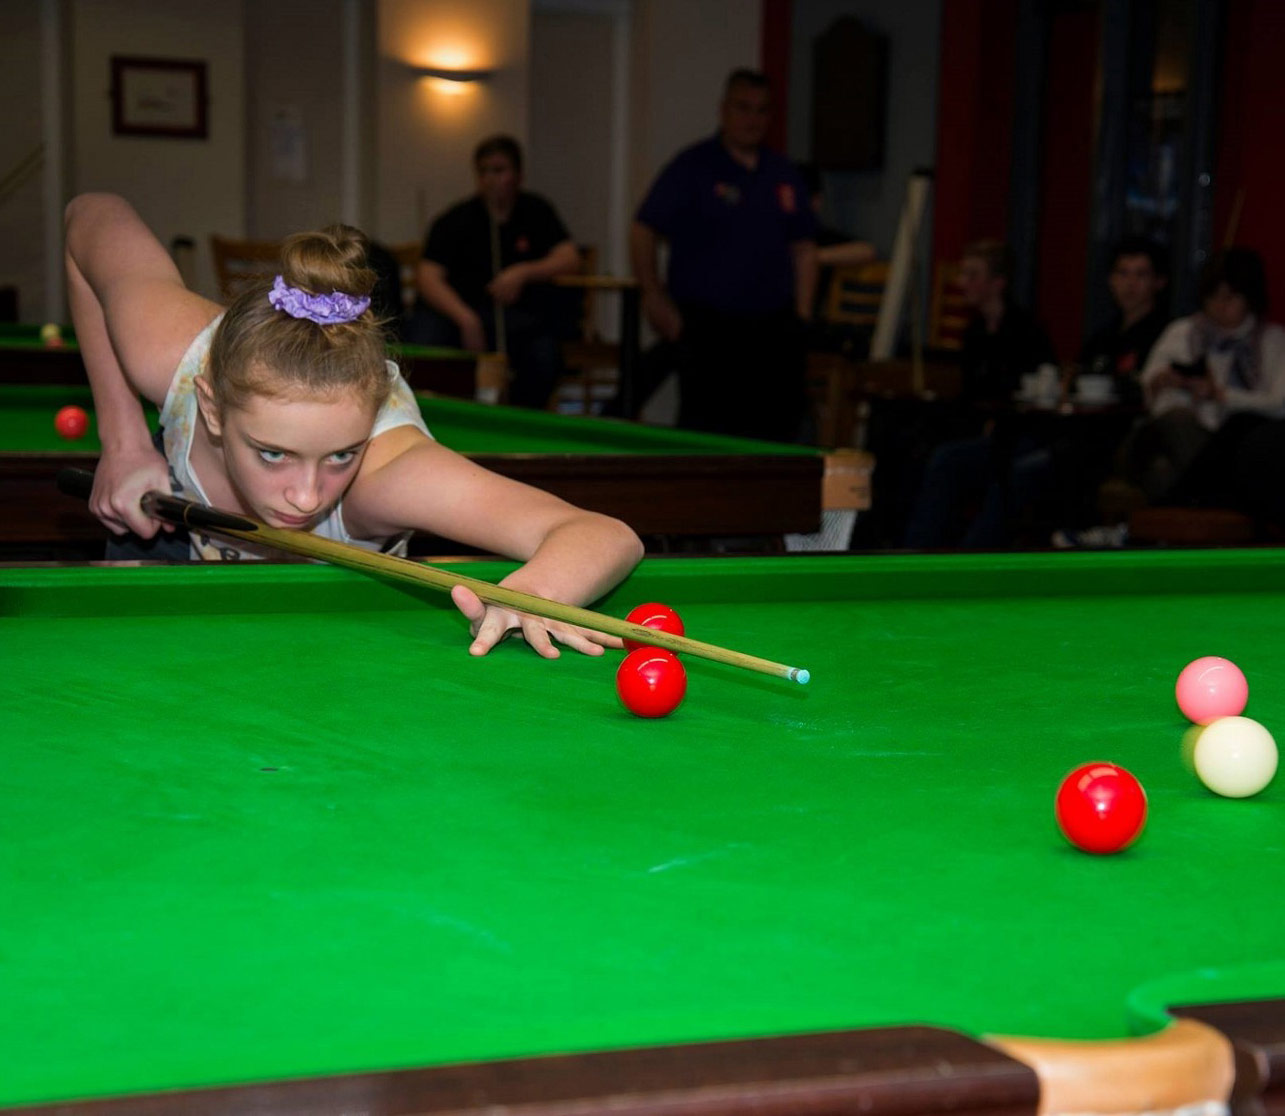 Photo: Aimee at the snooker table